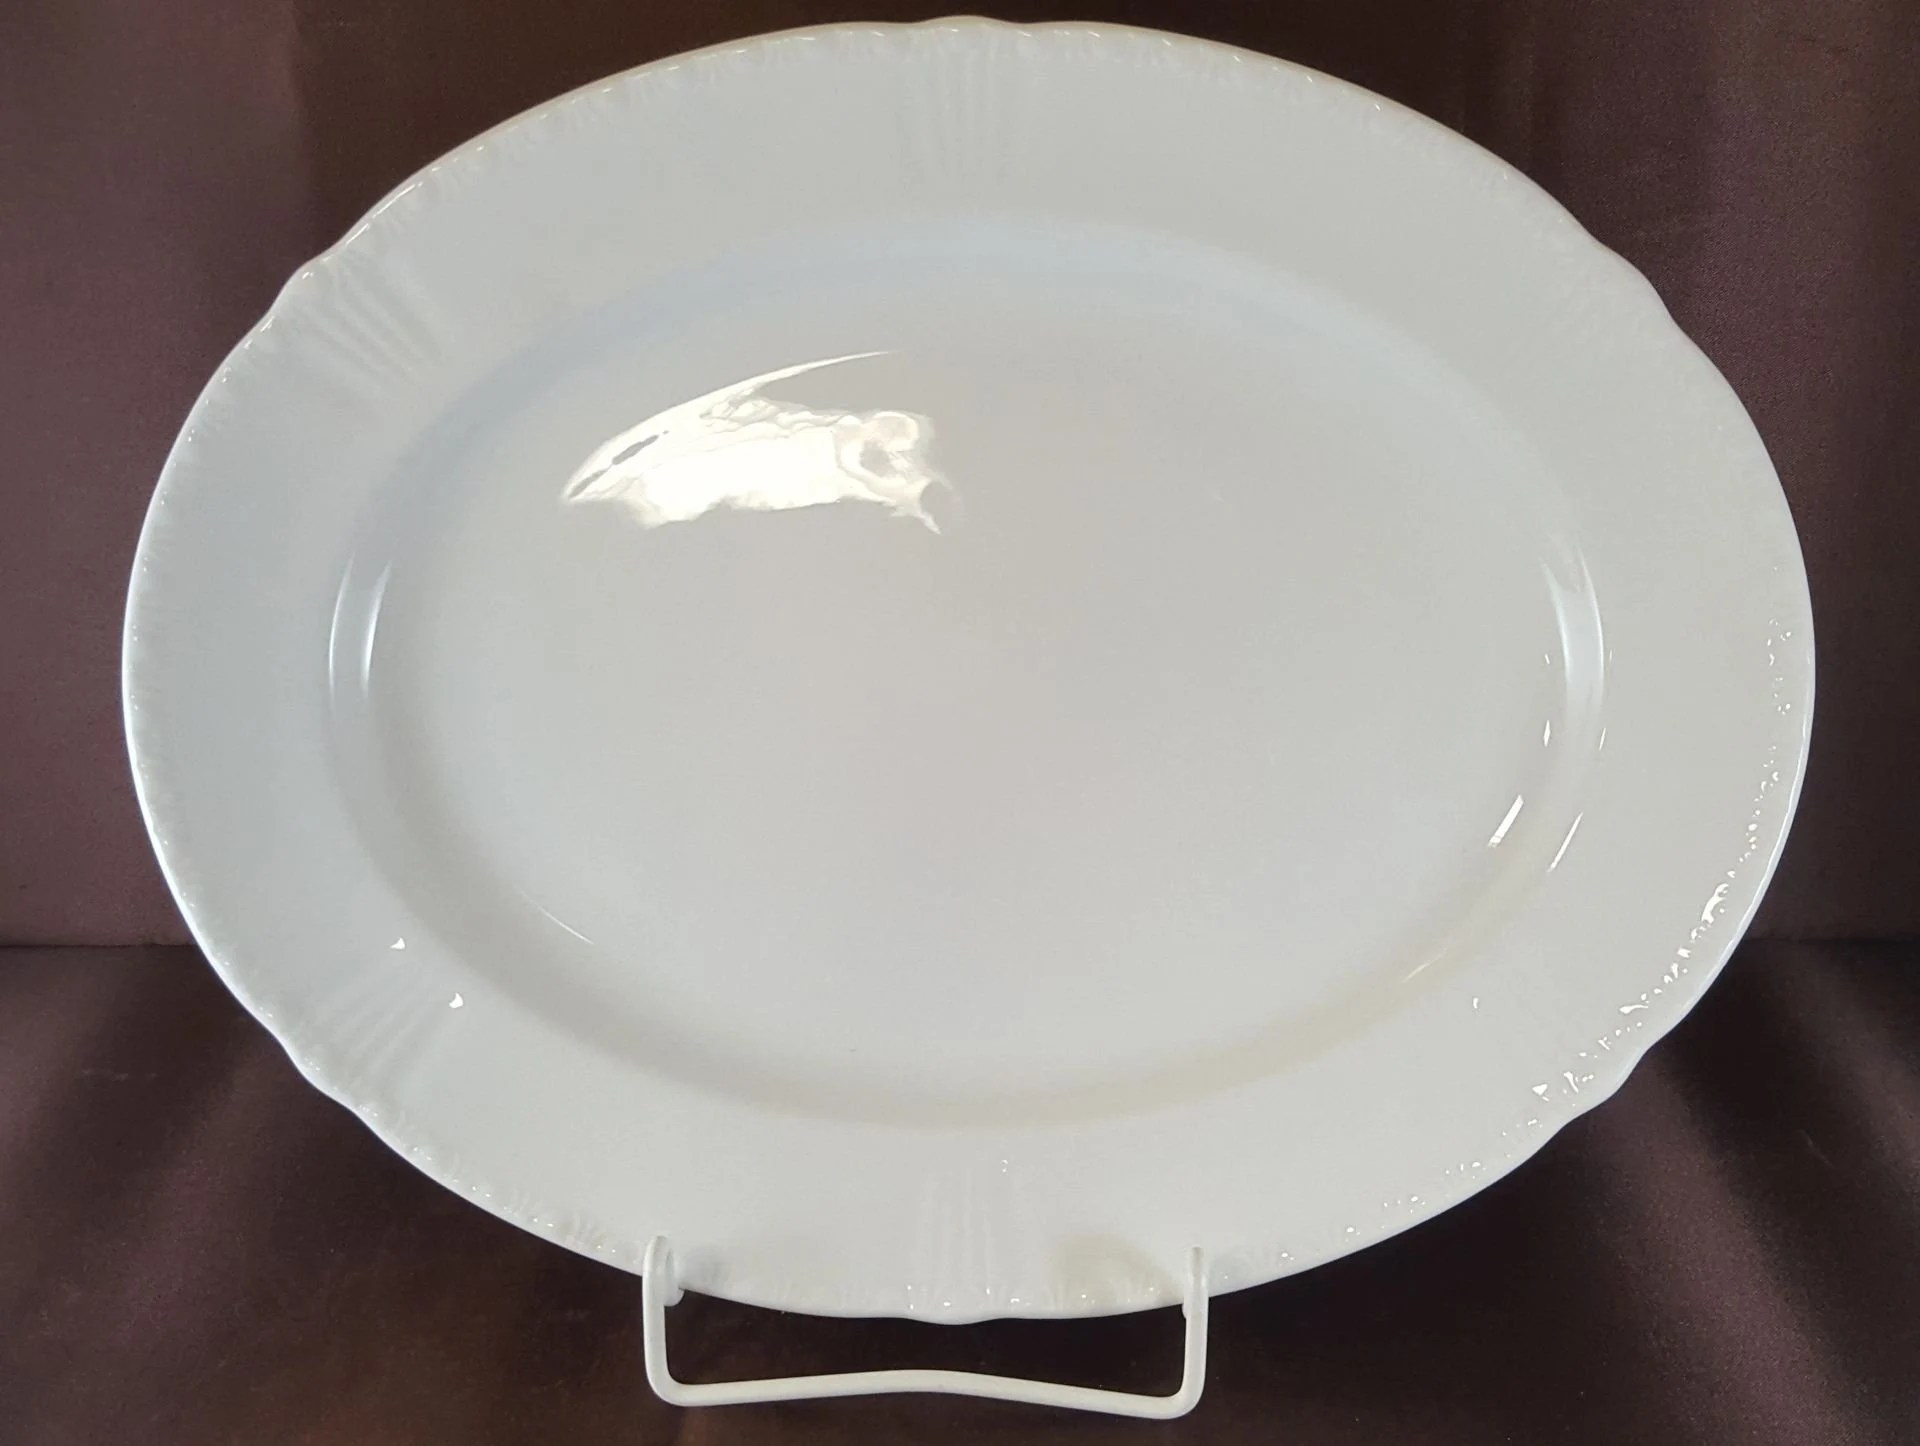 Formano Online Shop Formano Windsor White Meat Plate 33 5 Cm X 26 7 Cm